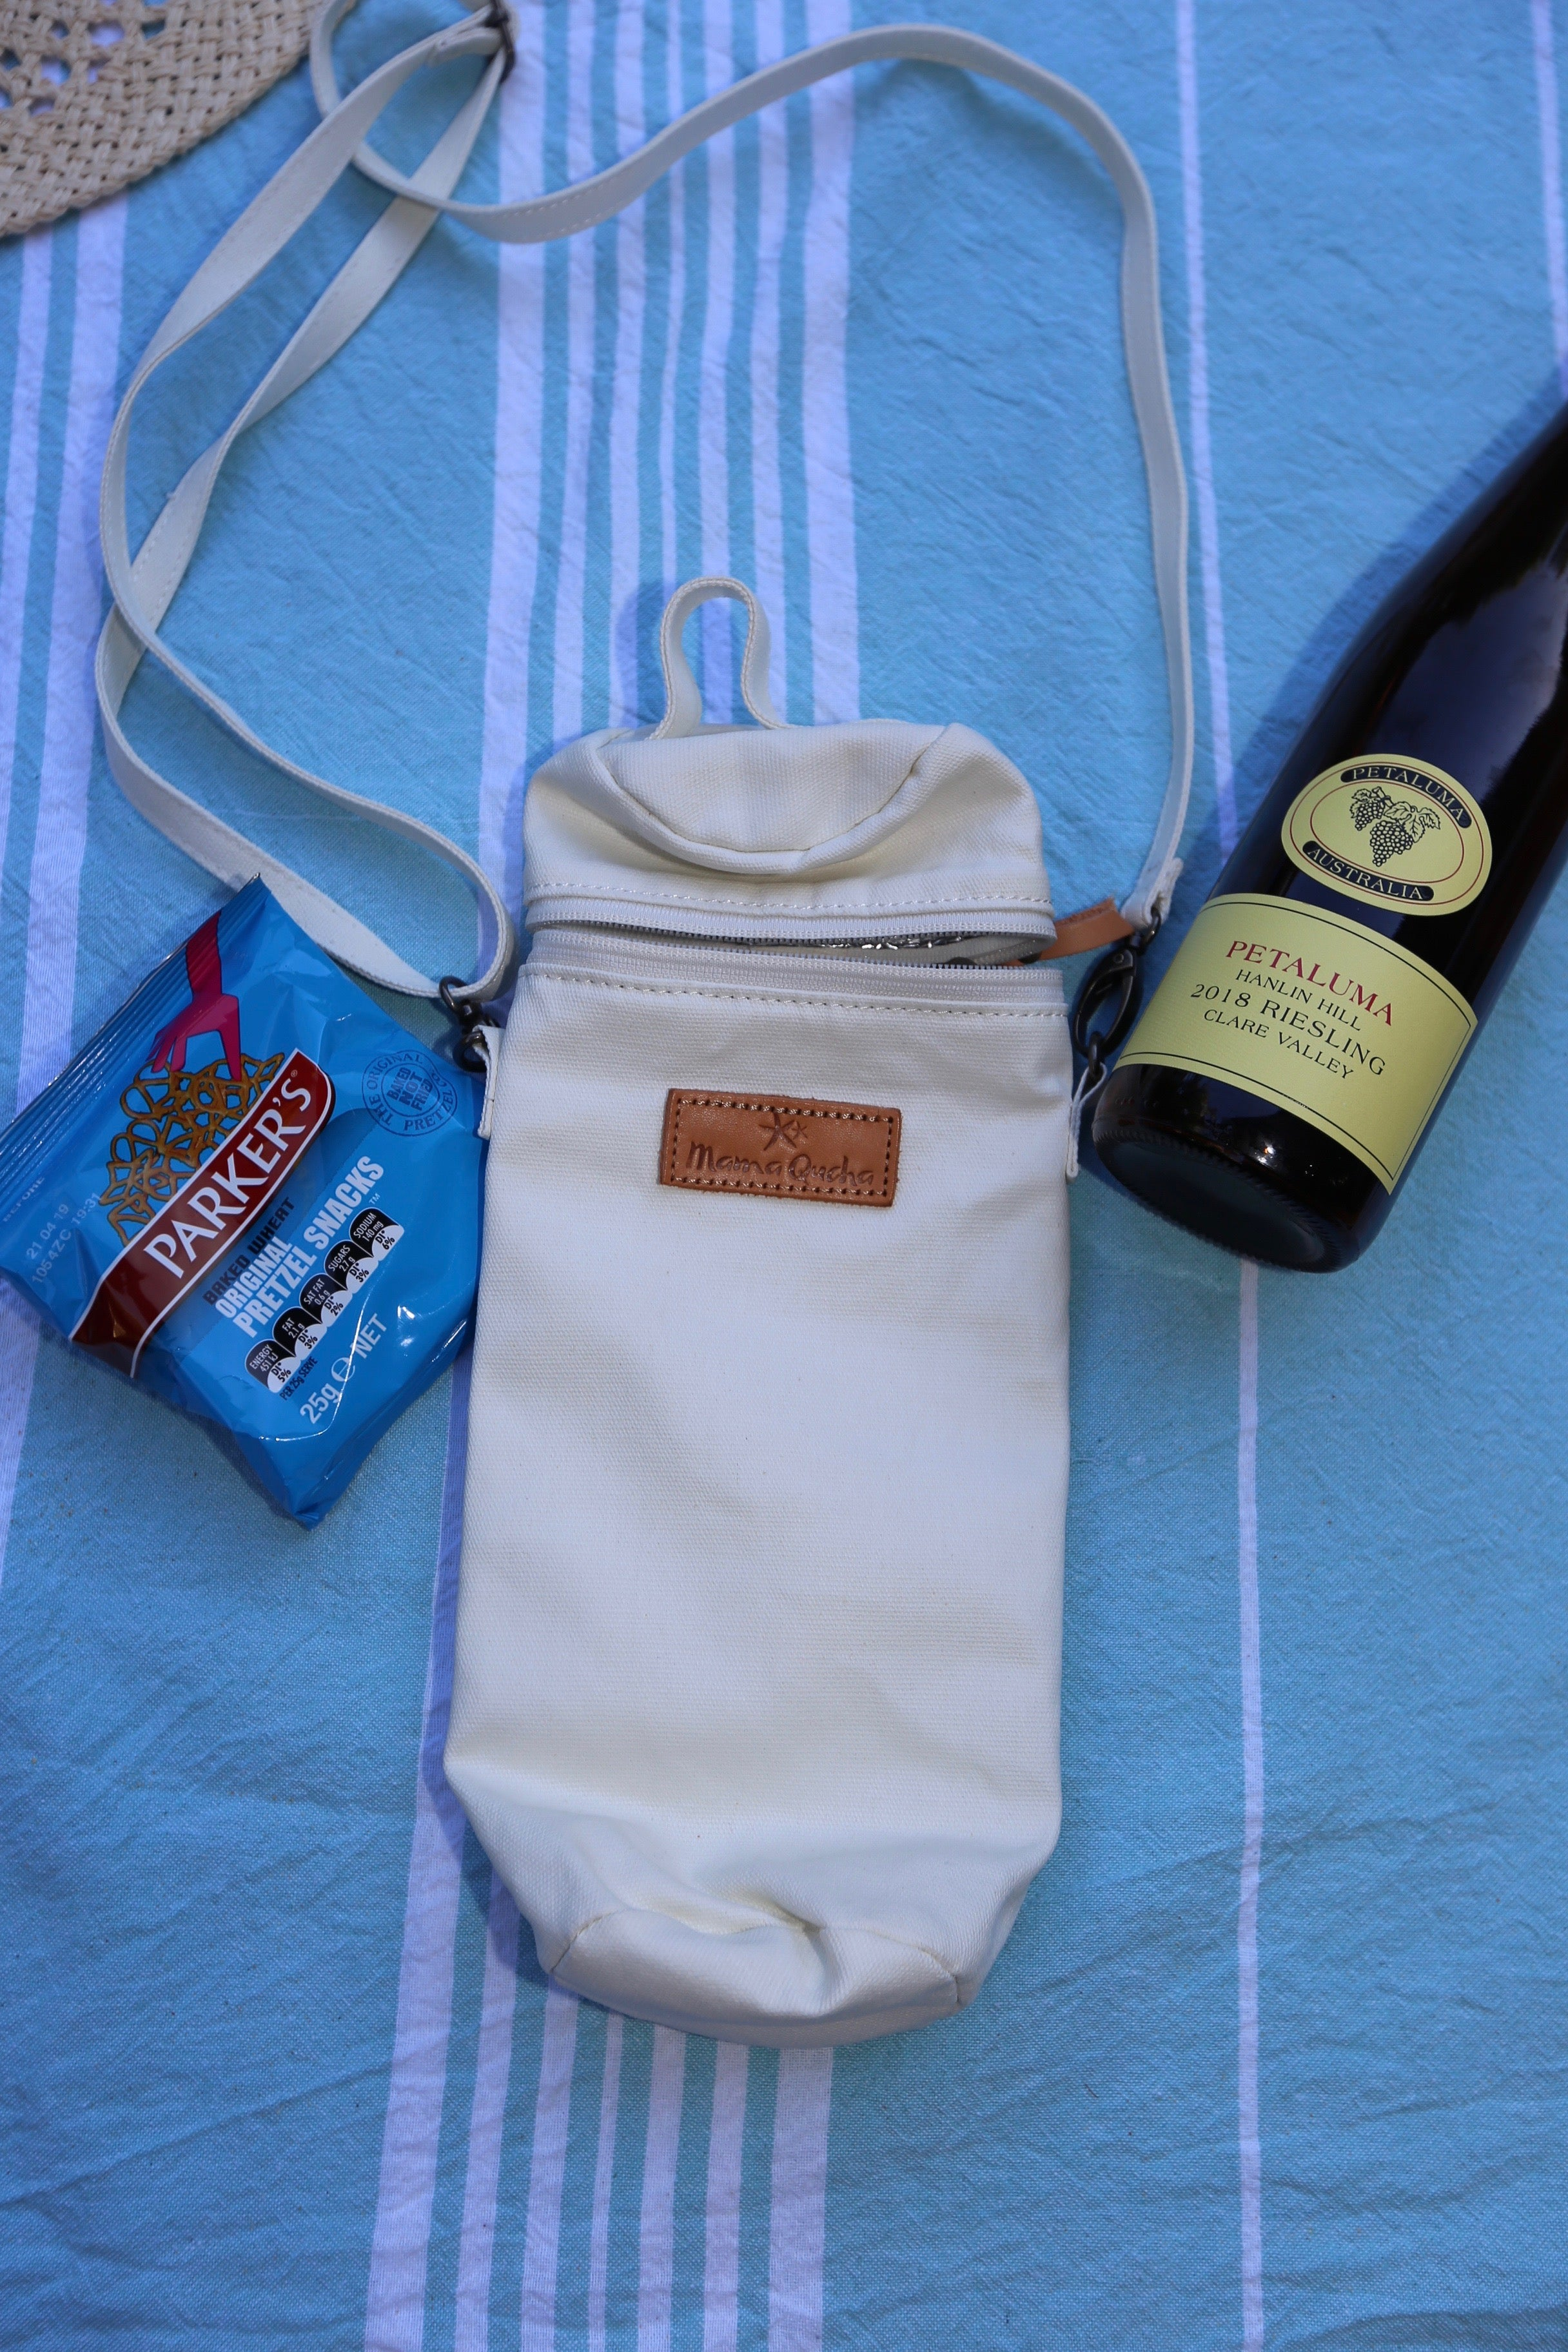 The Mama Qucha insulated bottle carrier / baby bottle holder in waxed white cotton show with props